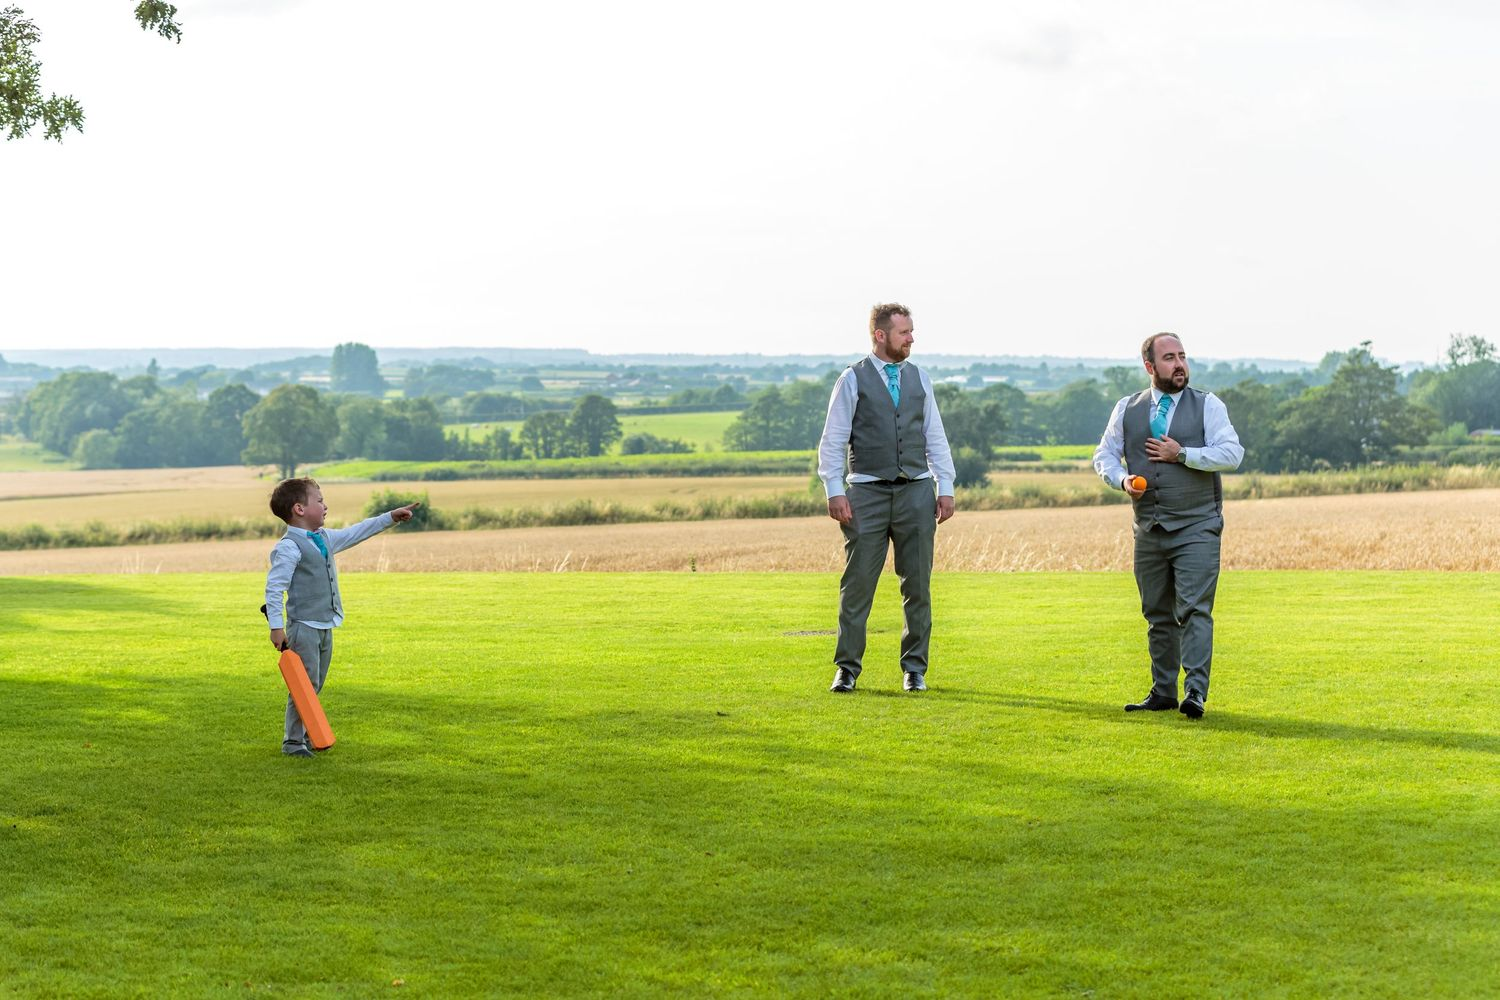 pageboy holding a cricket bat points to show the ushers where he hit the ball